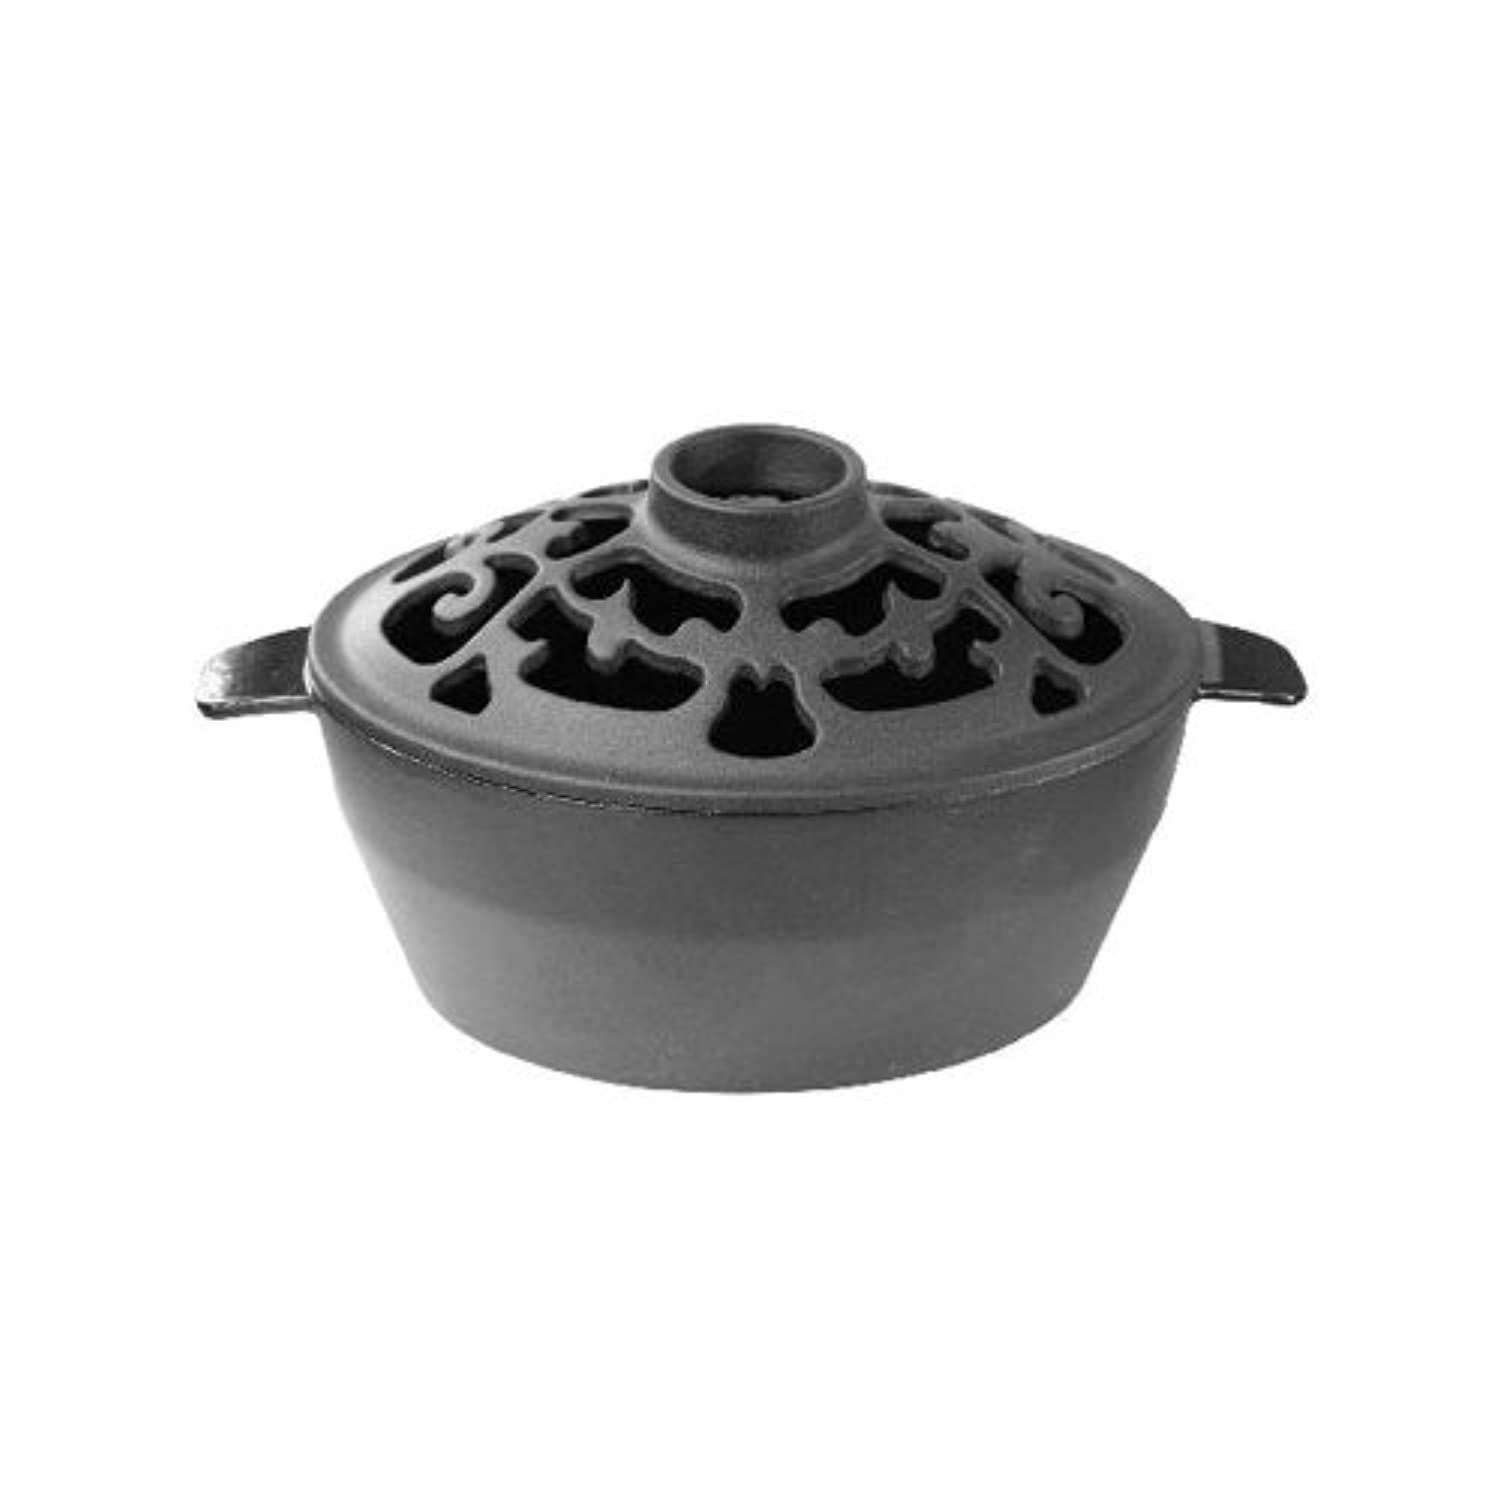 Woodeze Home Indoor Decorative Wood Stove Cast Iron Humidifier 2 Quart Satin Black Filigree Steamer by John Wright